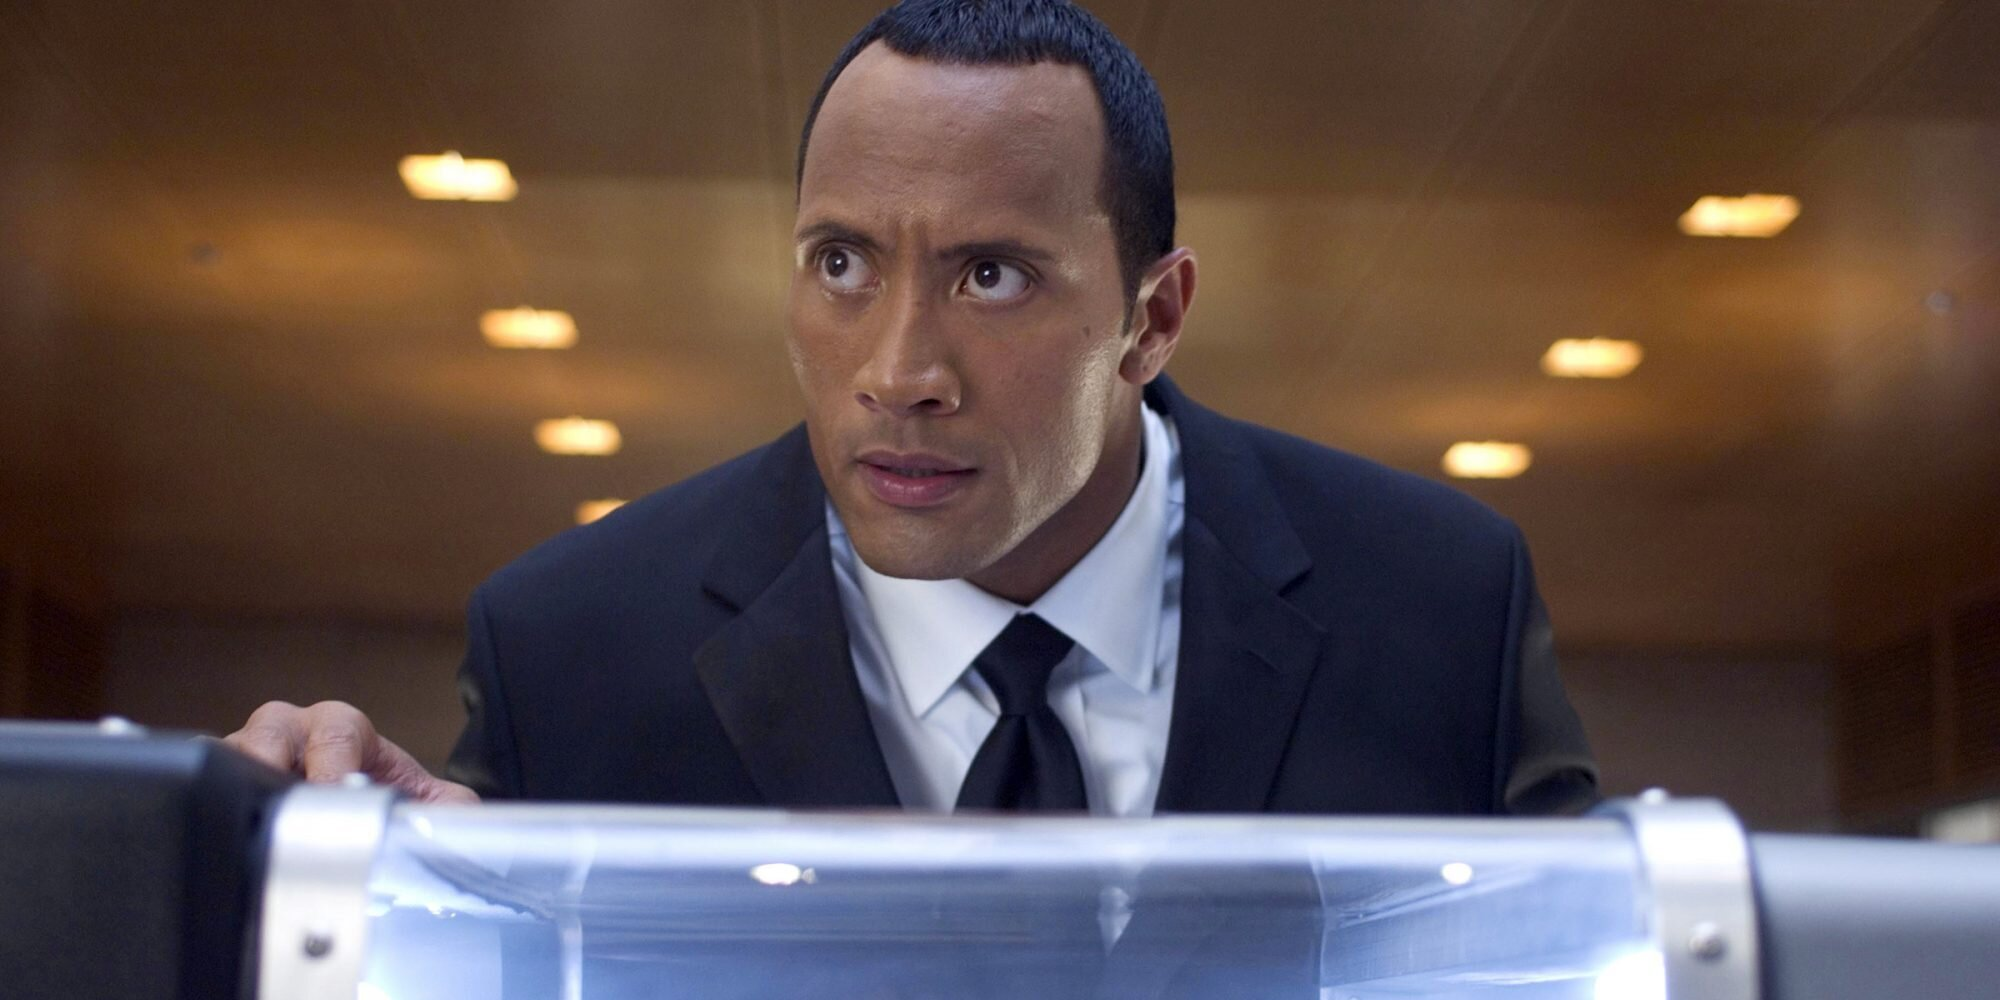 'Southland Tales' director hopes to reunite with Dwayne Johnson for planned sequel